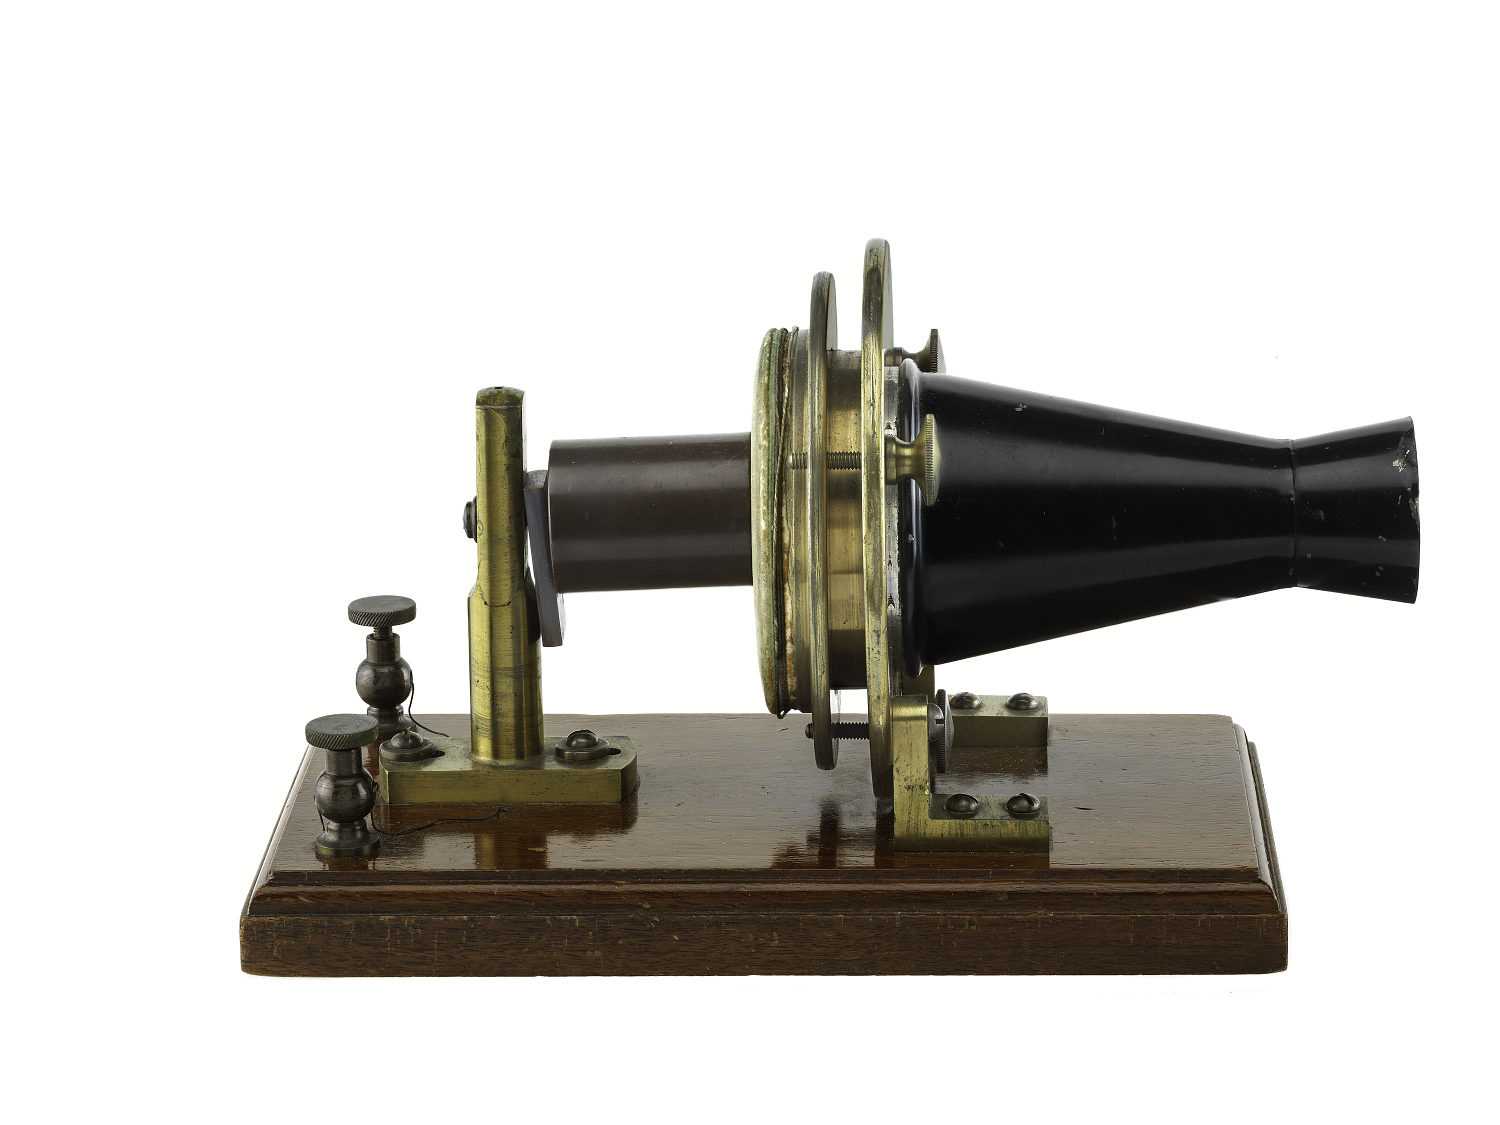 Alexander graham bell first telephone